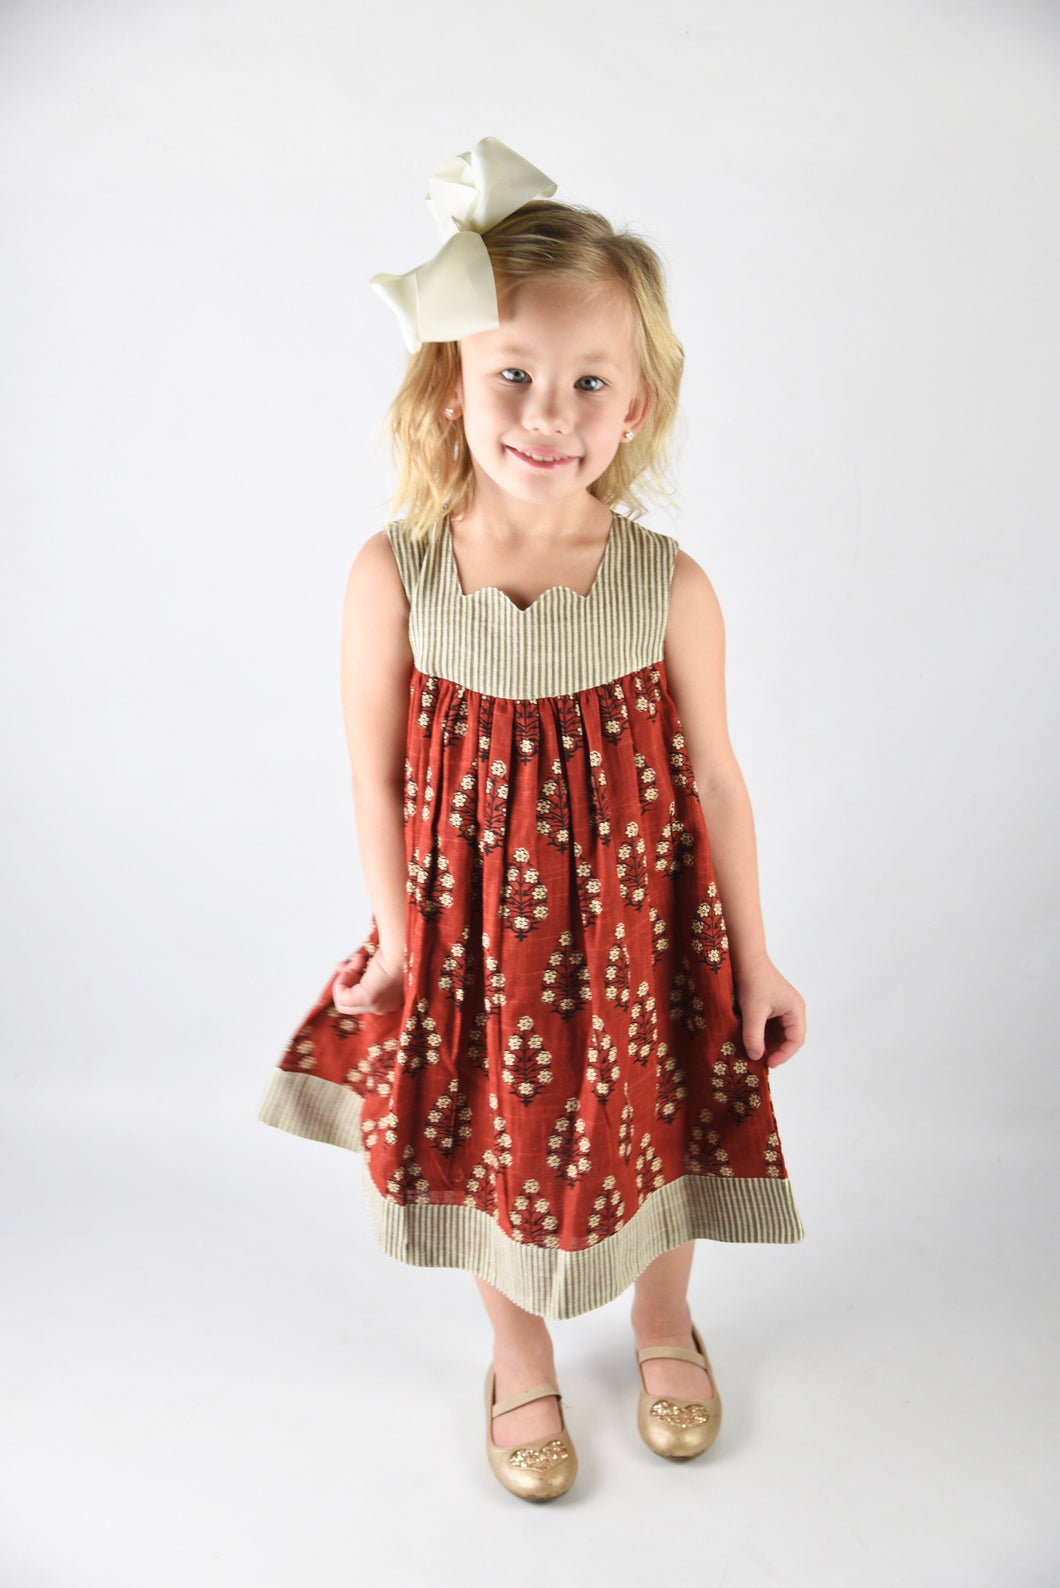 Maroon Sleeveless Dress with Pin Stripe Detail - Kids Clothing, Dress - Girls Dress, Yo Baby Online - Yo Baby